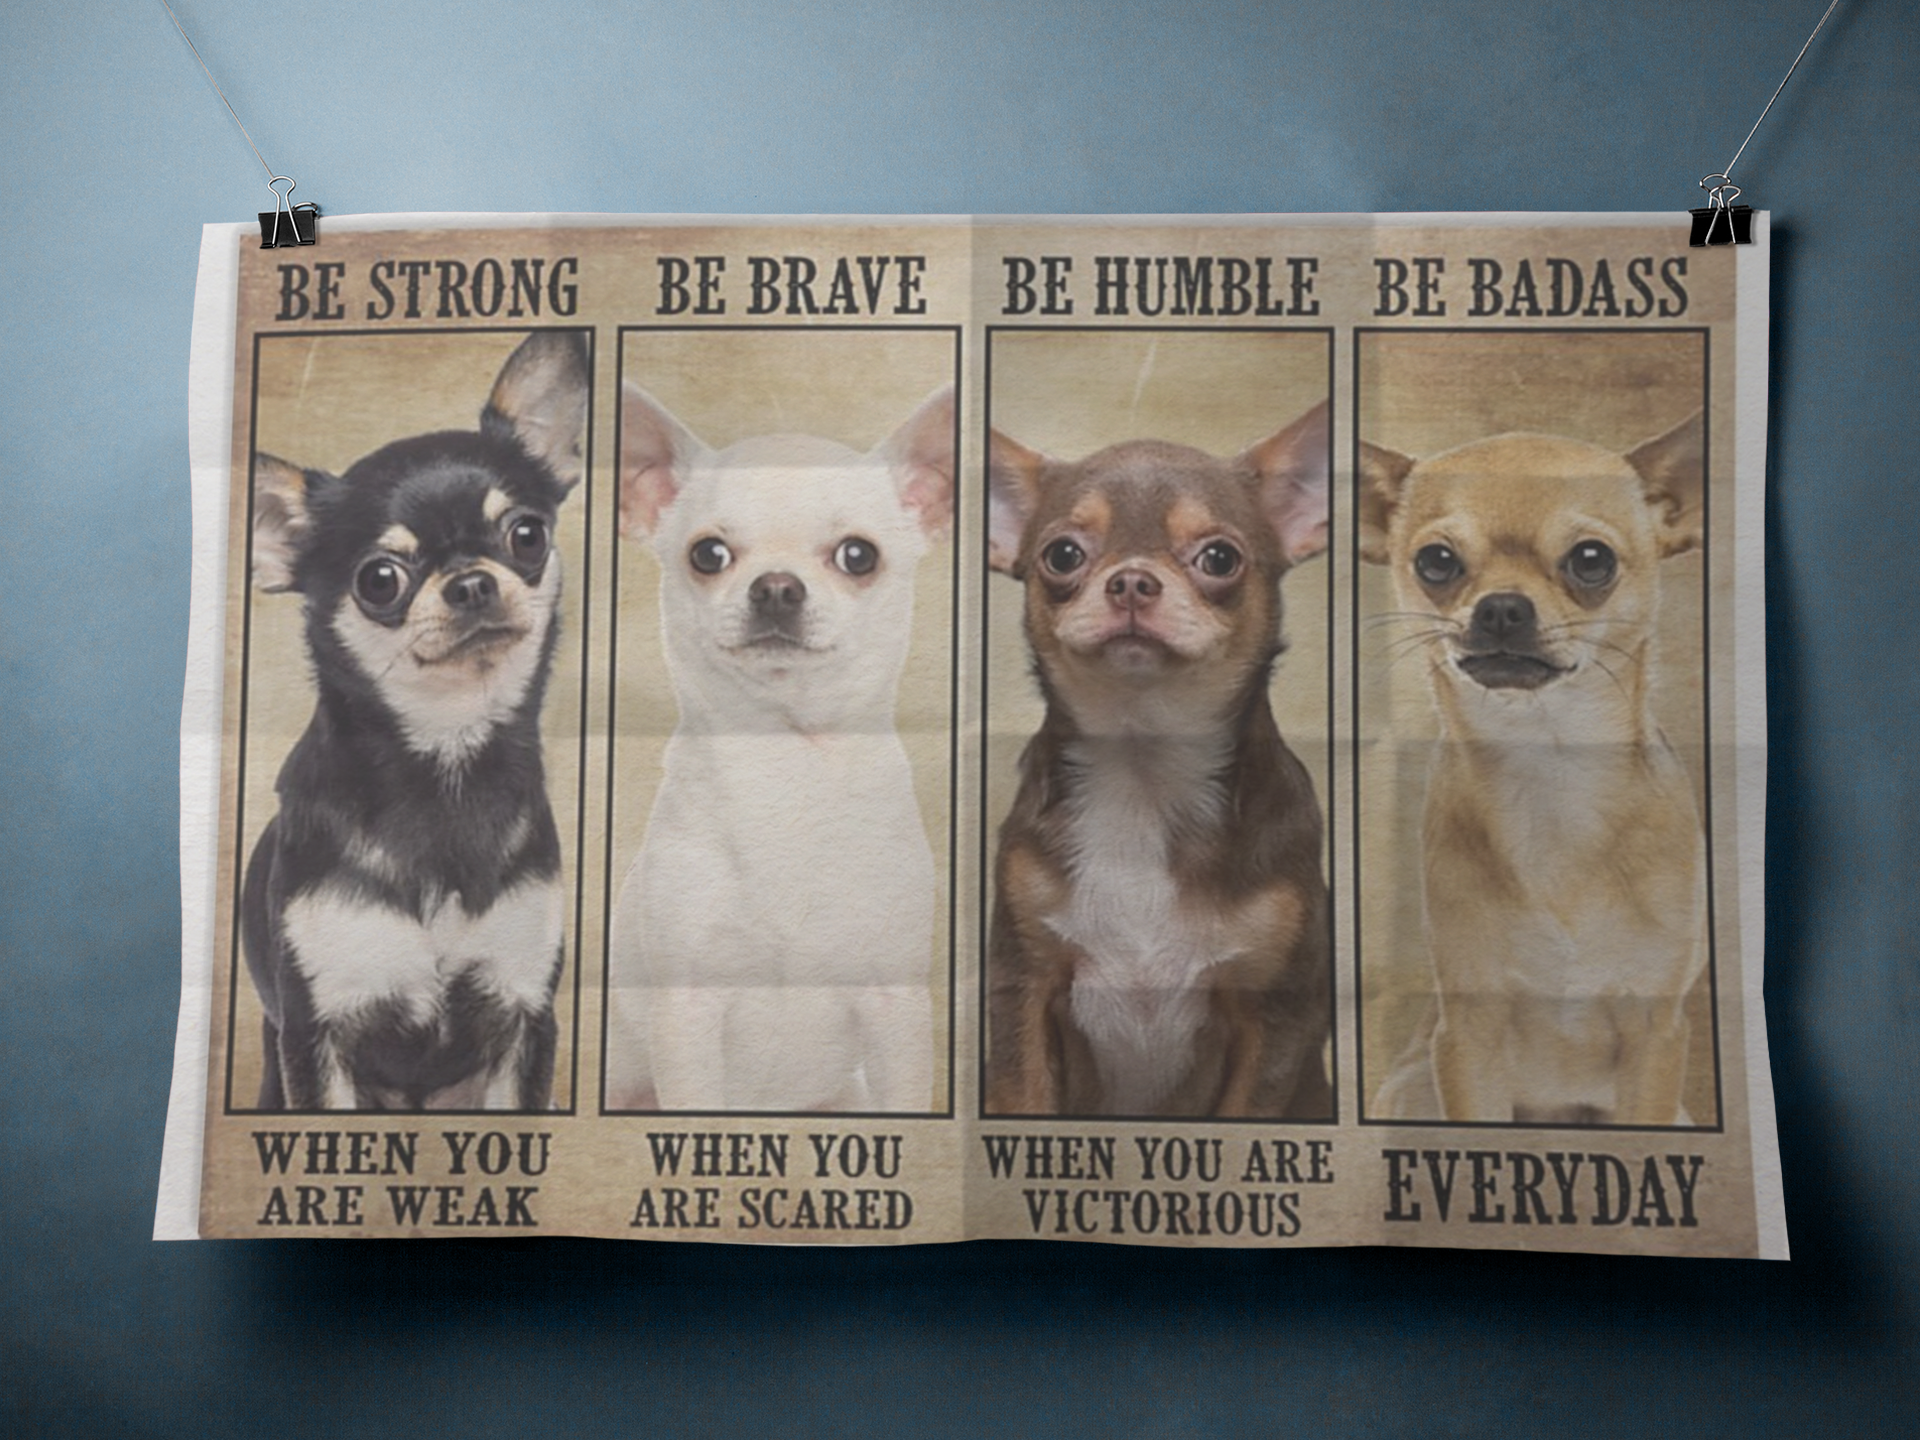 Chiahuahua be strong be brave be humble be badass poster